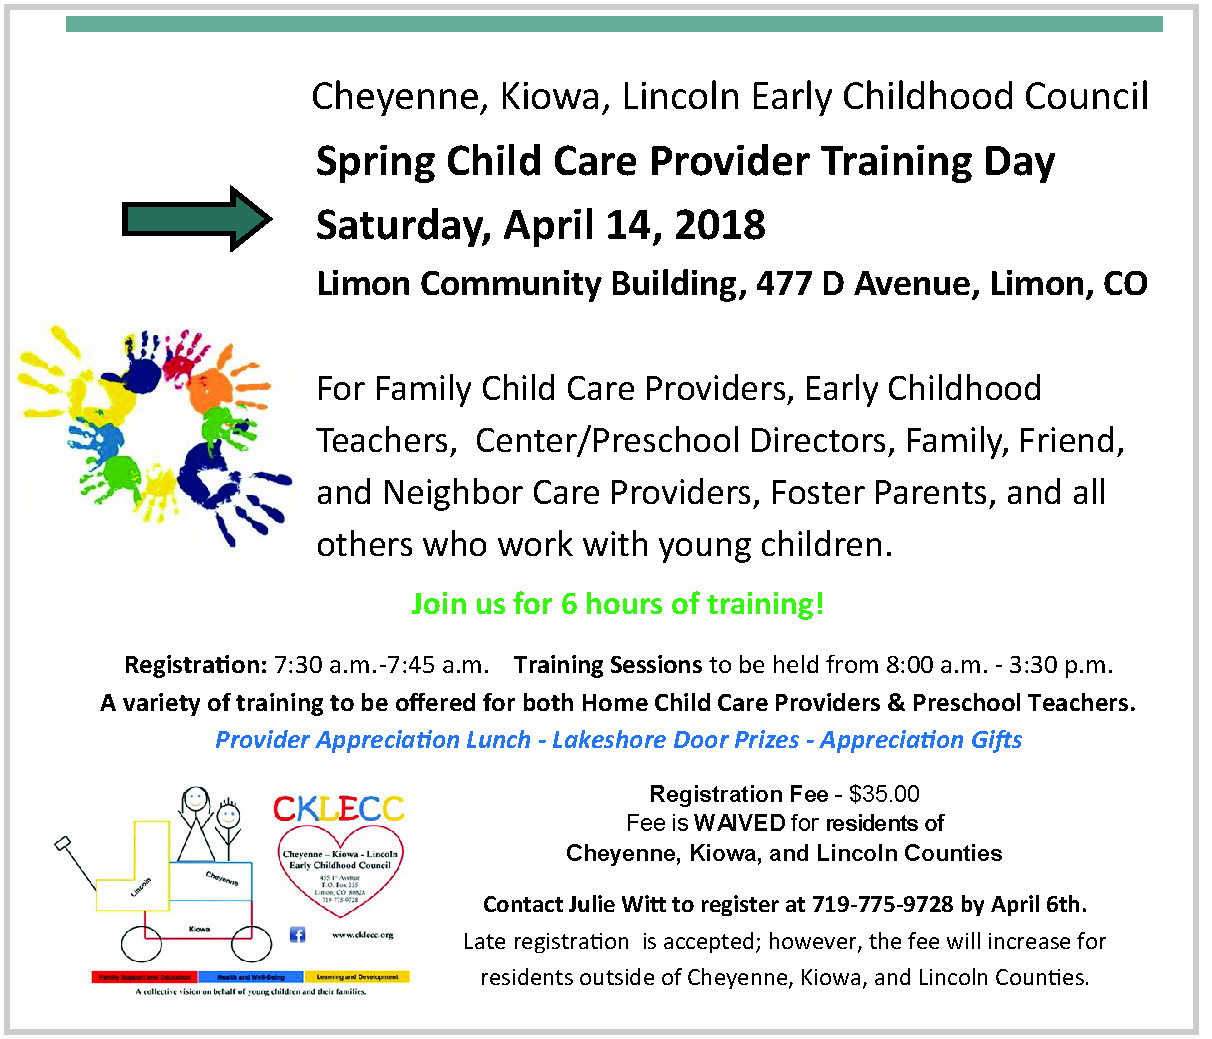 ADV - CKLECC Child Care Training